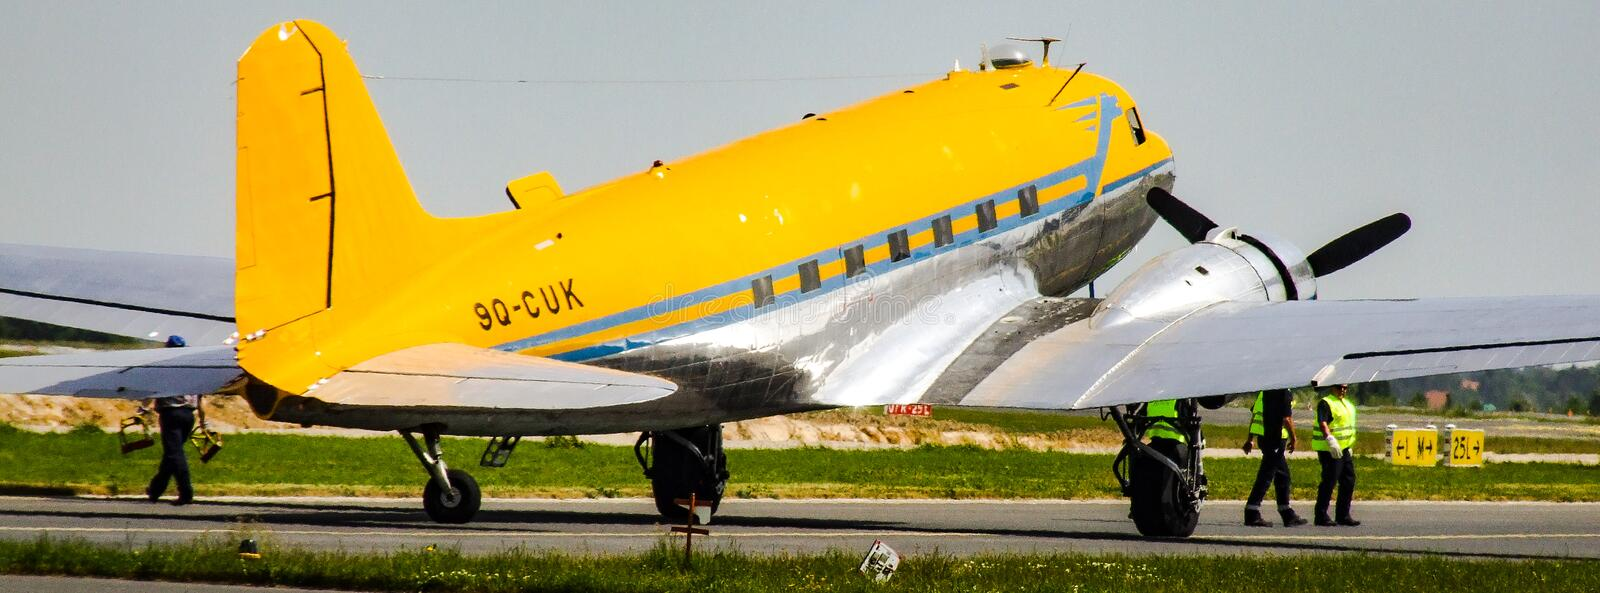 Douglas C-47B Skytrain with 9Q-CUK markings and Valentuna Aviators livery. Douglas C-47B Skytrain formerly DC-3 Dakota. Airplane with 9Q-CUK marking. Aircraft stock photography